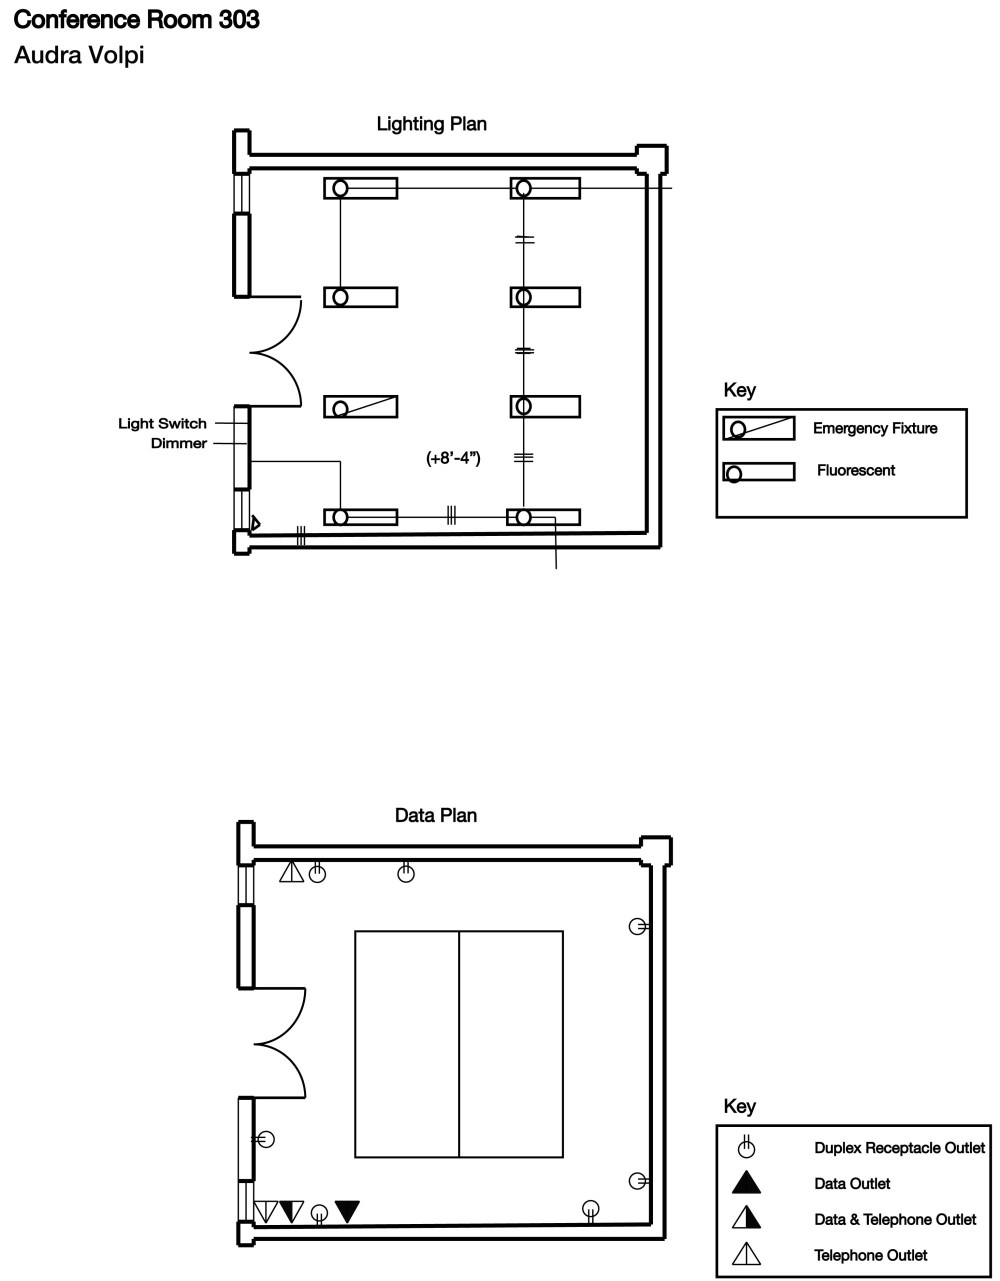 medium resolution of lighting and data plan 5 5 conference room audra volpi stage lighting diagram lighting in a room diagram